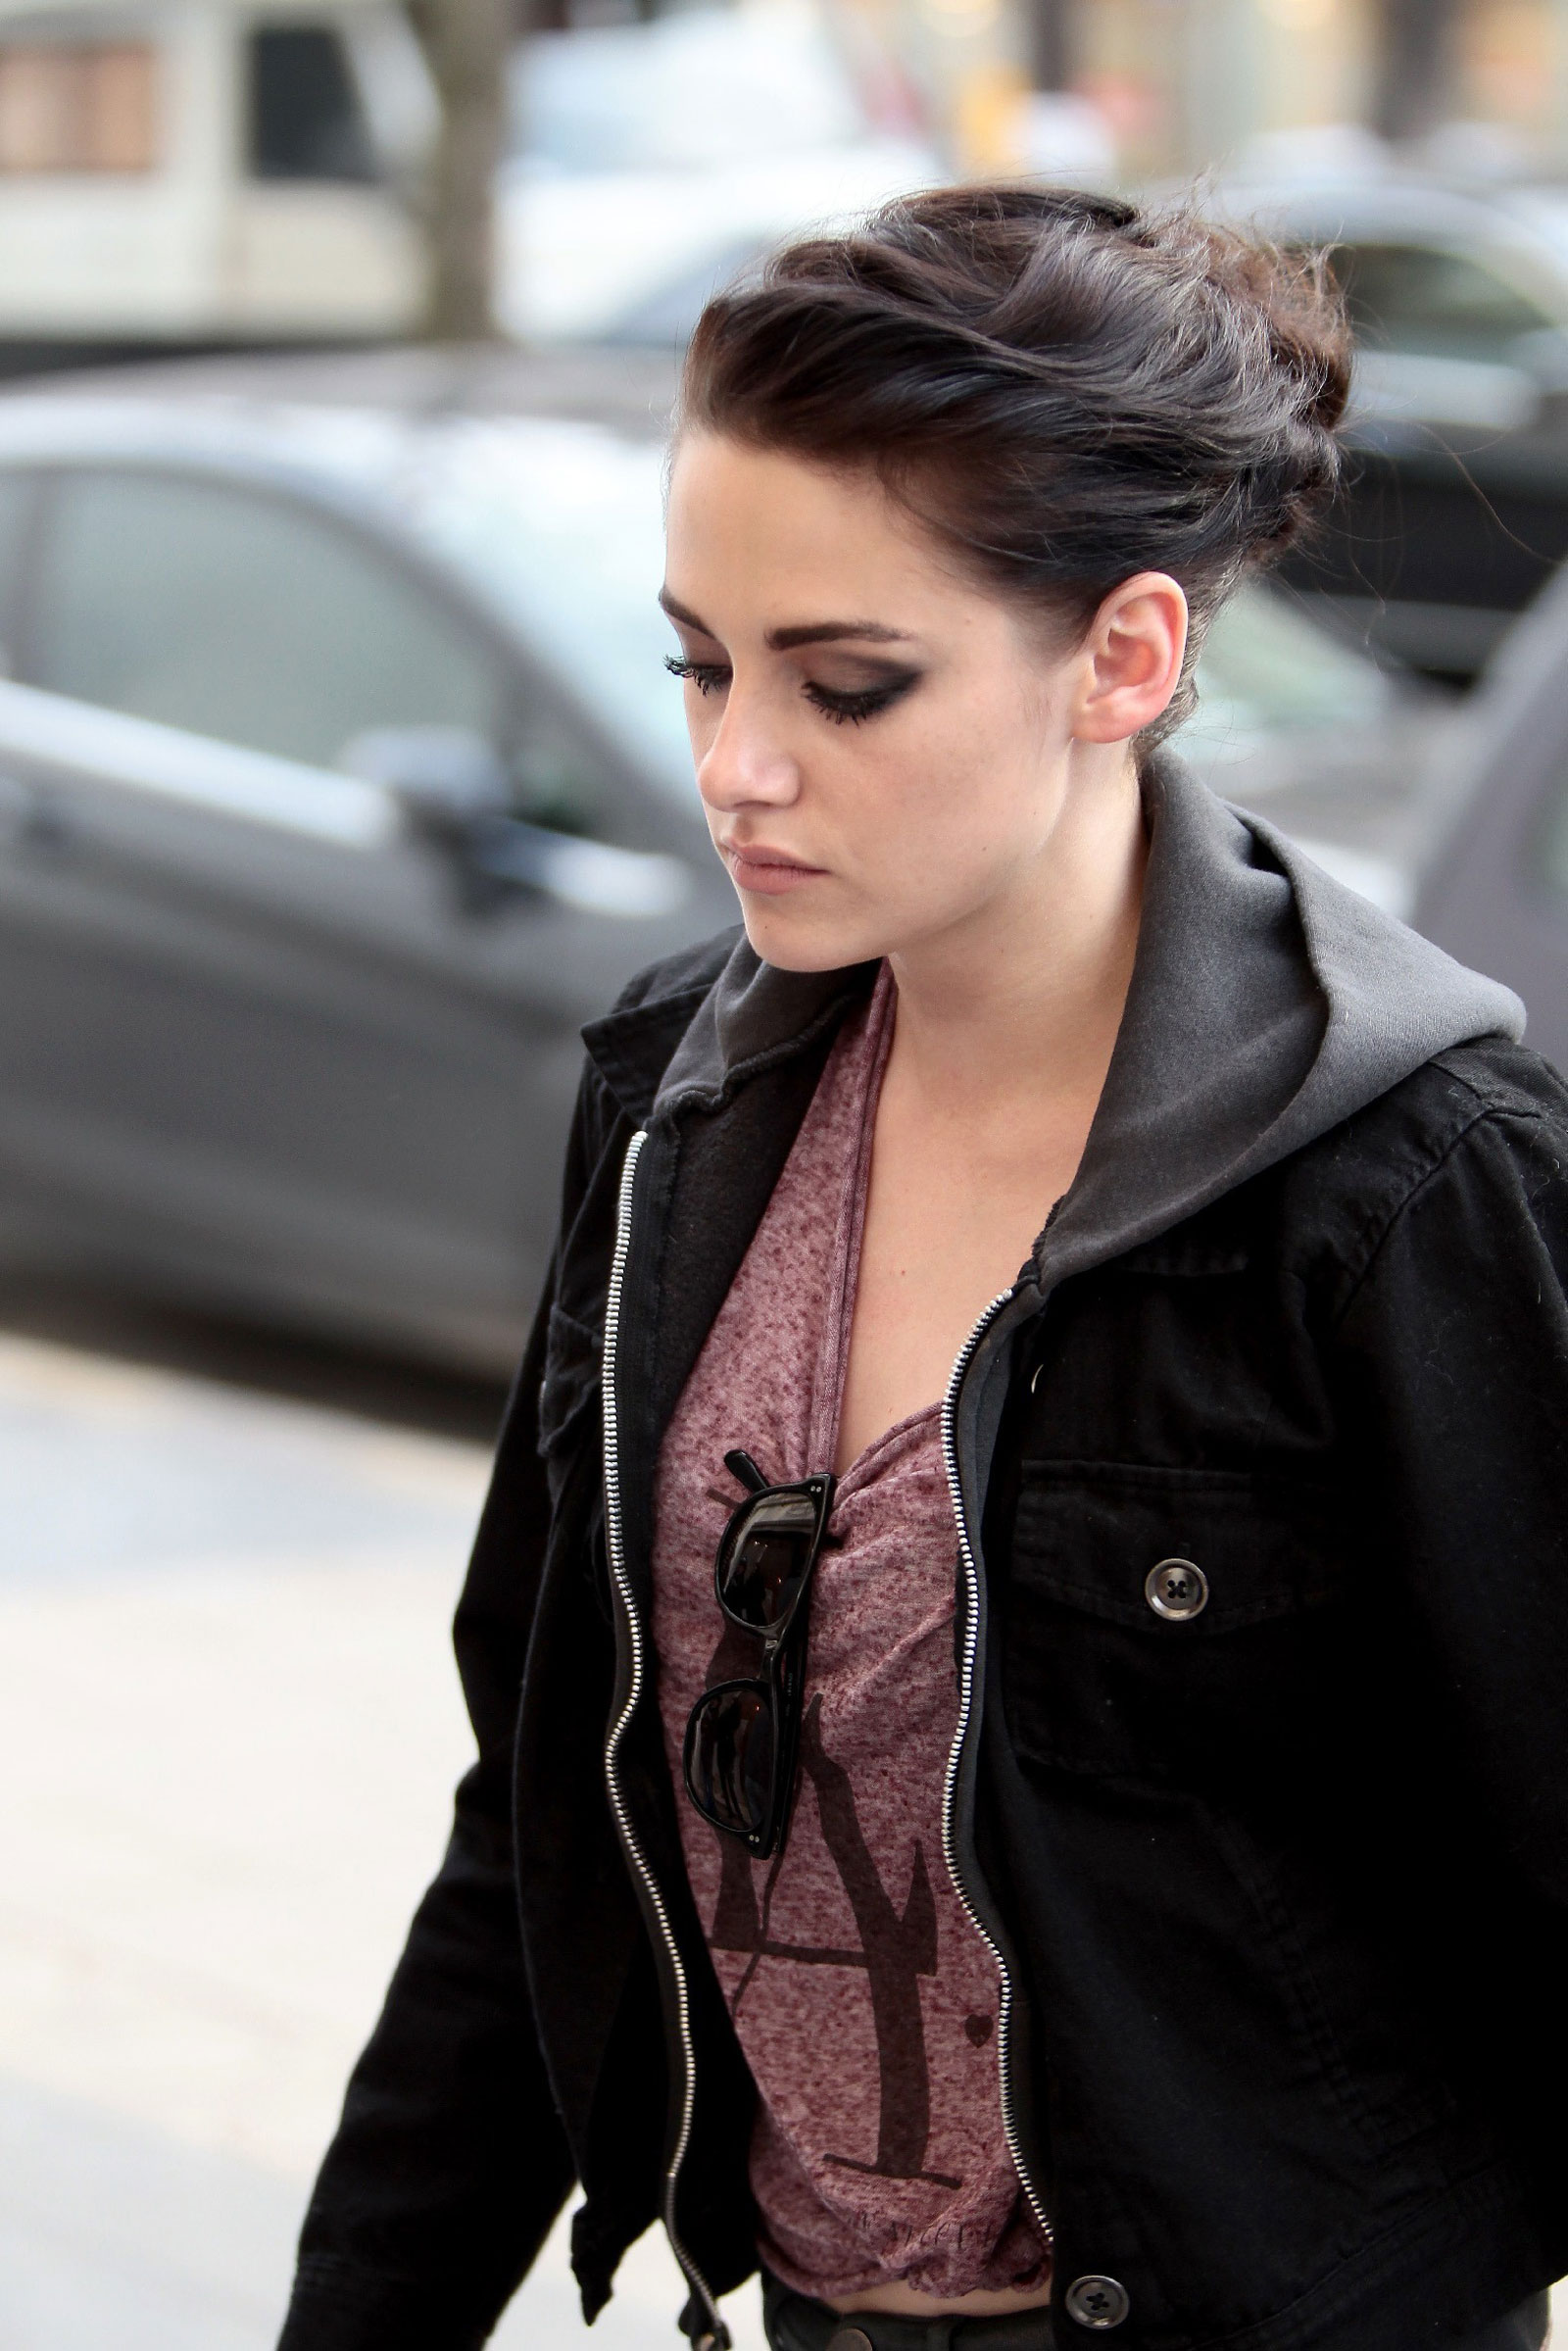 kristen stewart heads to vanity fair photo shoot - hawtcelebs